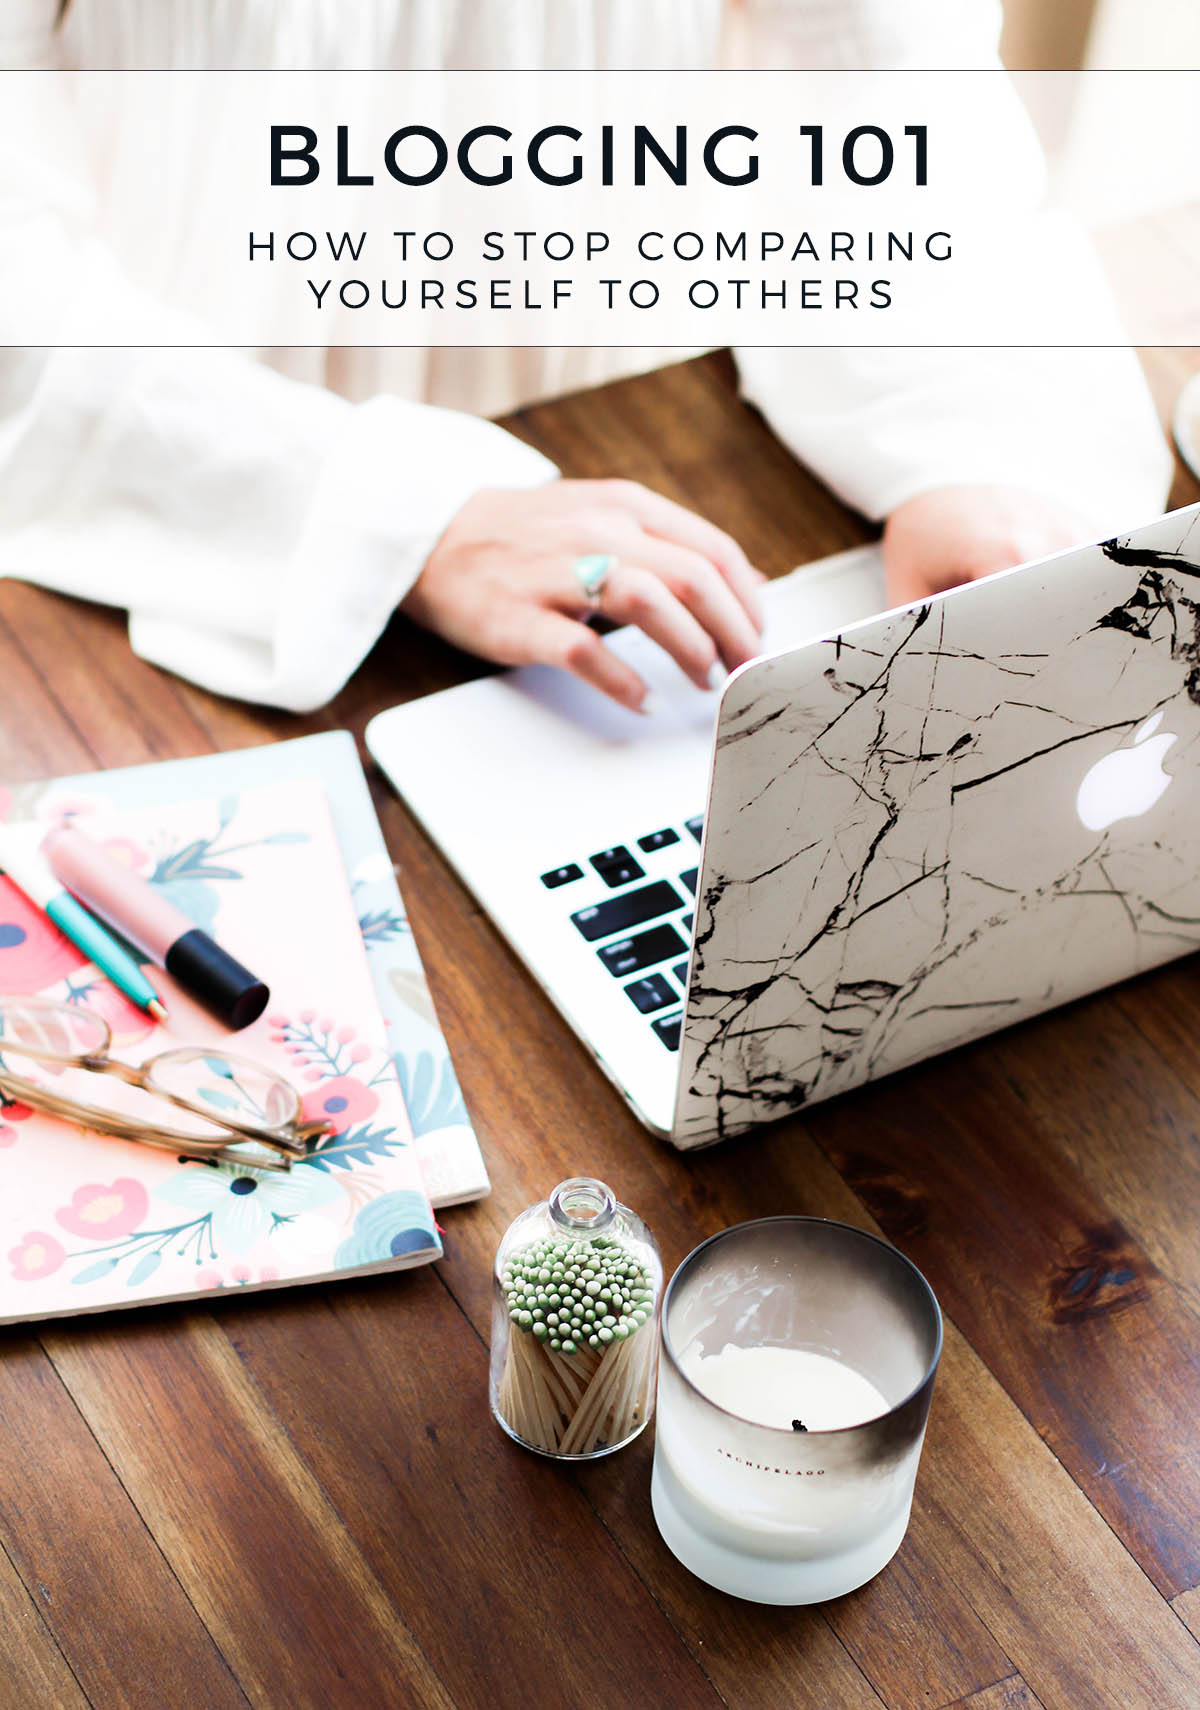 blogging 101 how to stop comparing yourself to others